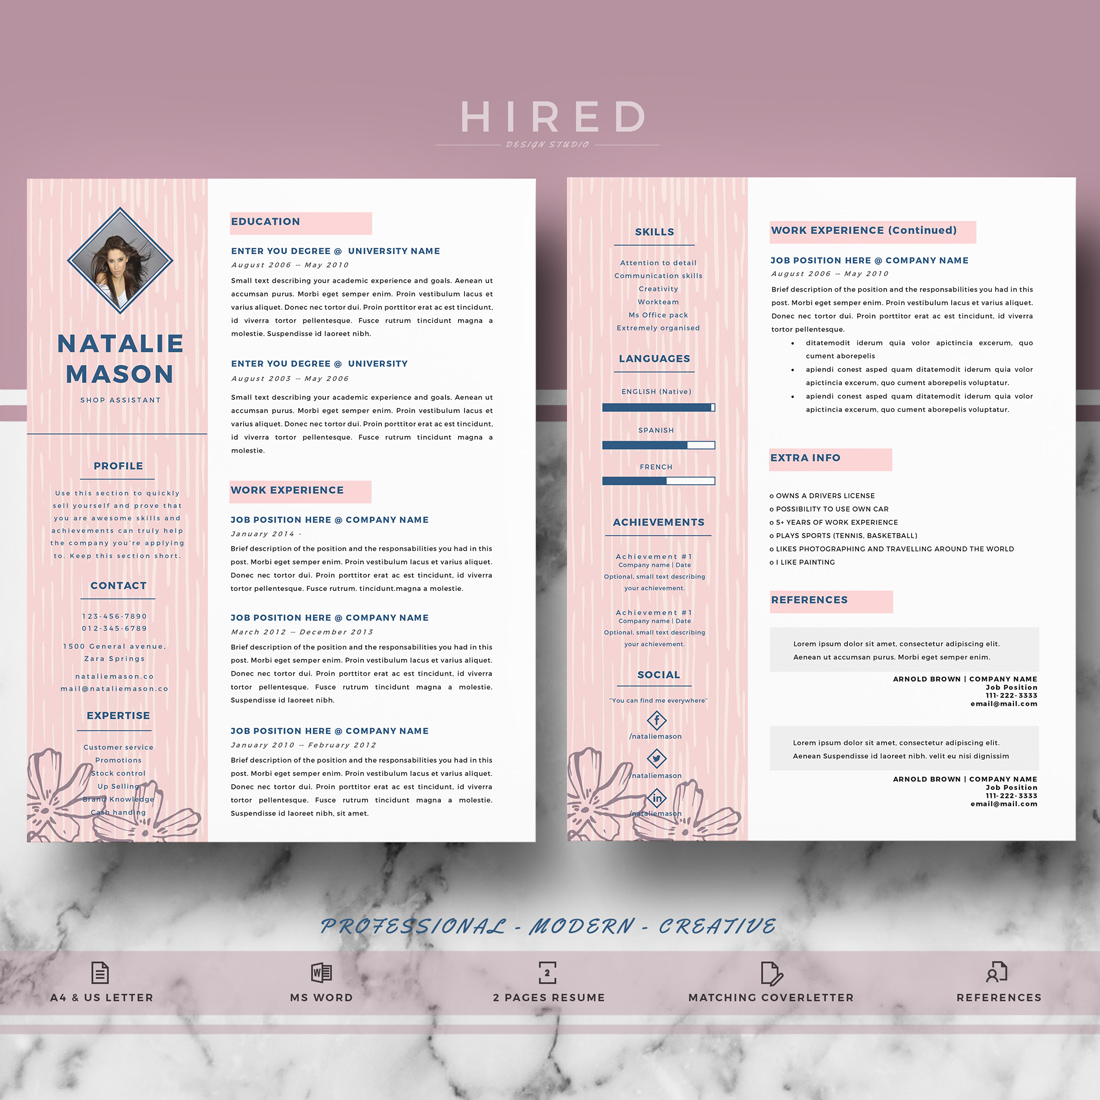 creative resume template archives hired design studio. Black Bedroom Furniture Sets. Home Design Ideas